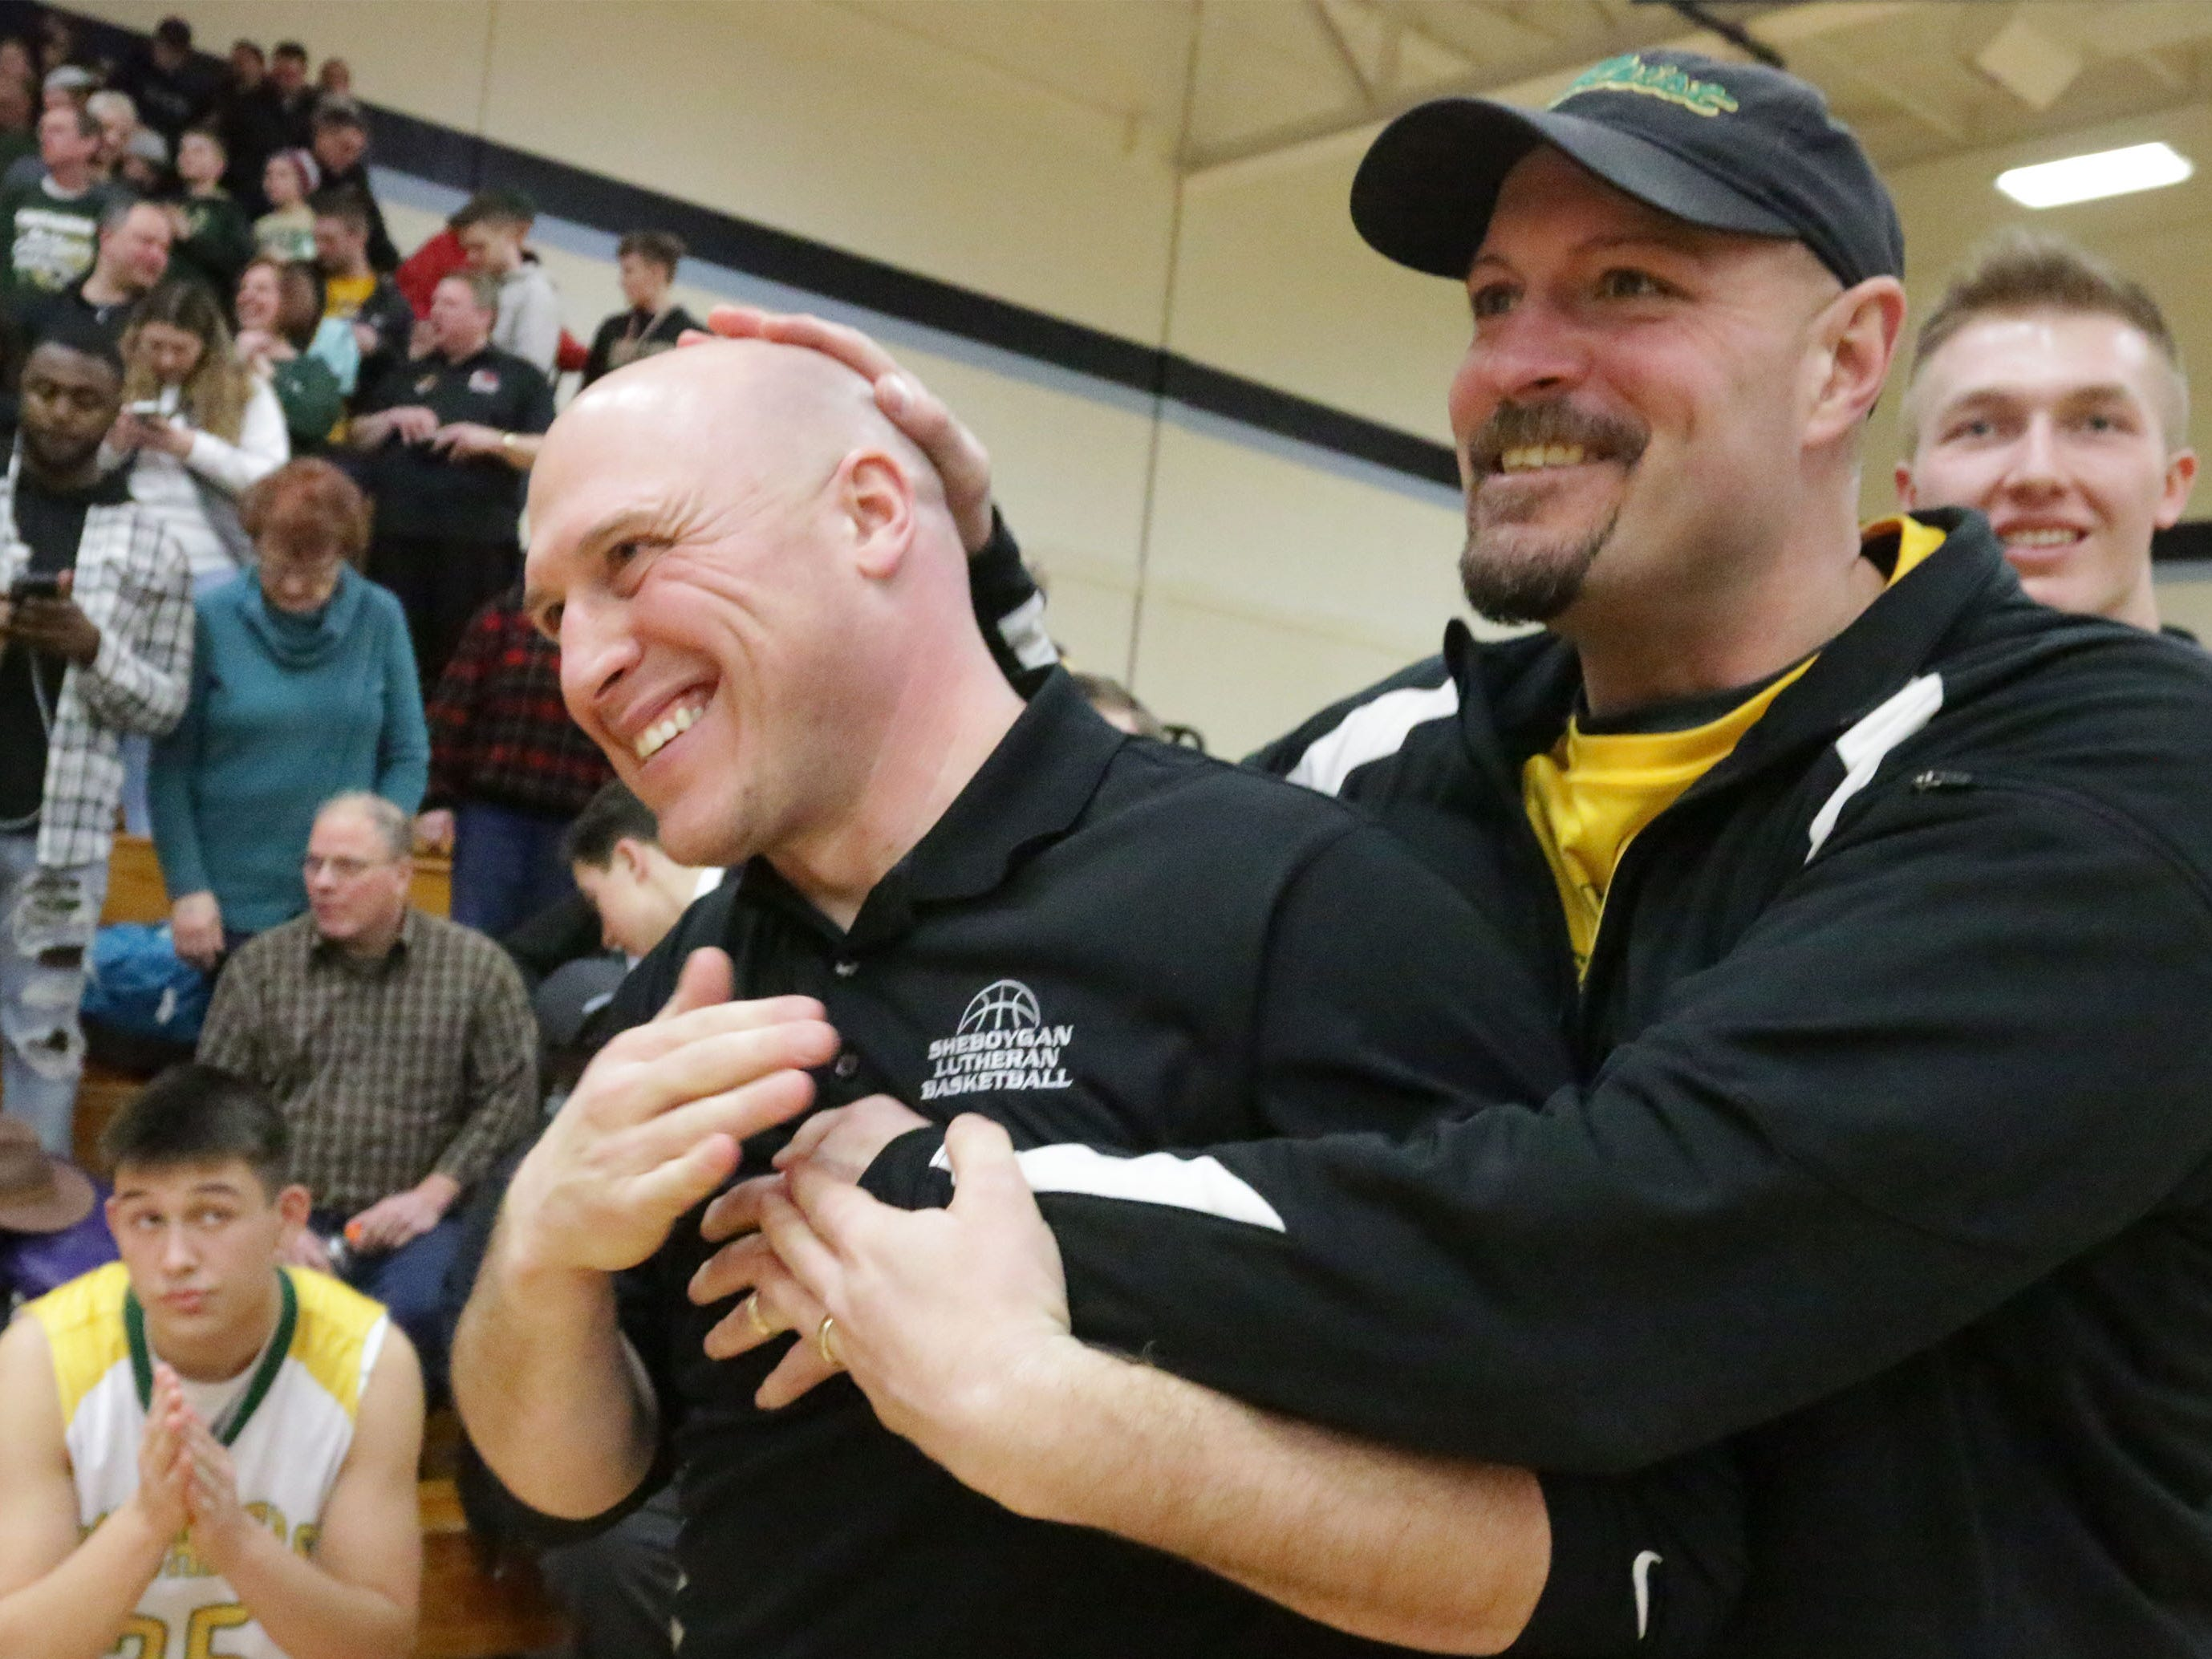 Sheboygan Lutheran Head Coach Nick Verhagen, left, gets a head rub from Brian Ognacevic, right, following the Crusaders' 83-69 win over Rio, Saturday, March 9, 2019, in Sheboygan, Wis. Ognacevic is the father of player Jacob Ognacevic (23).